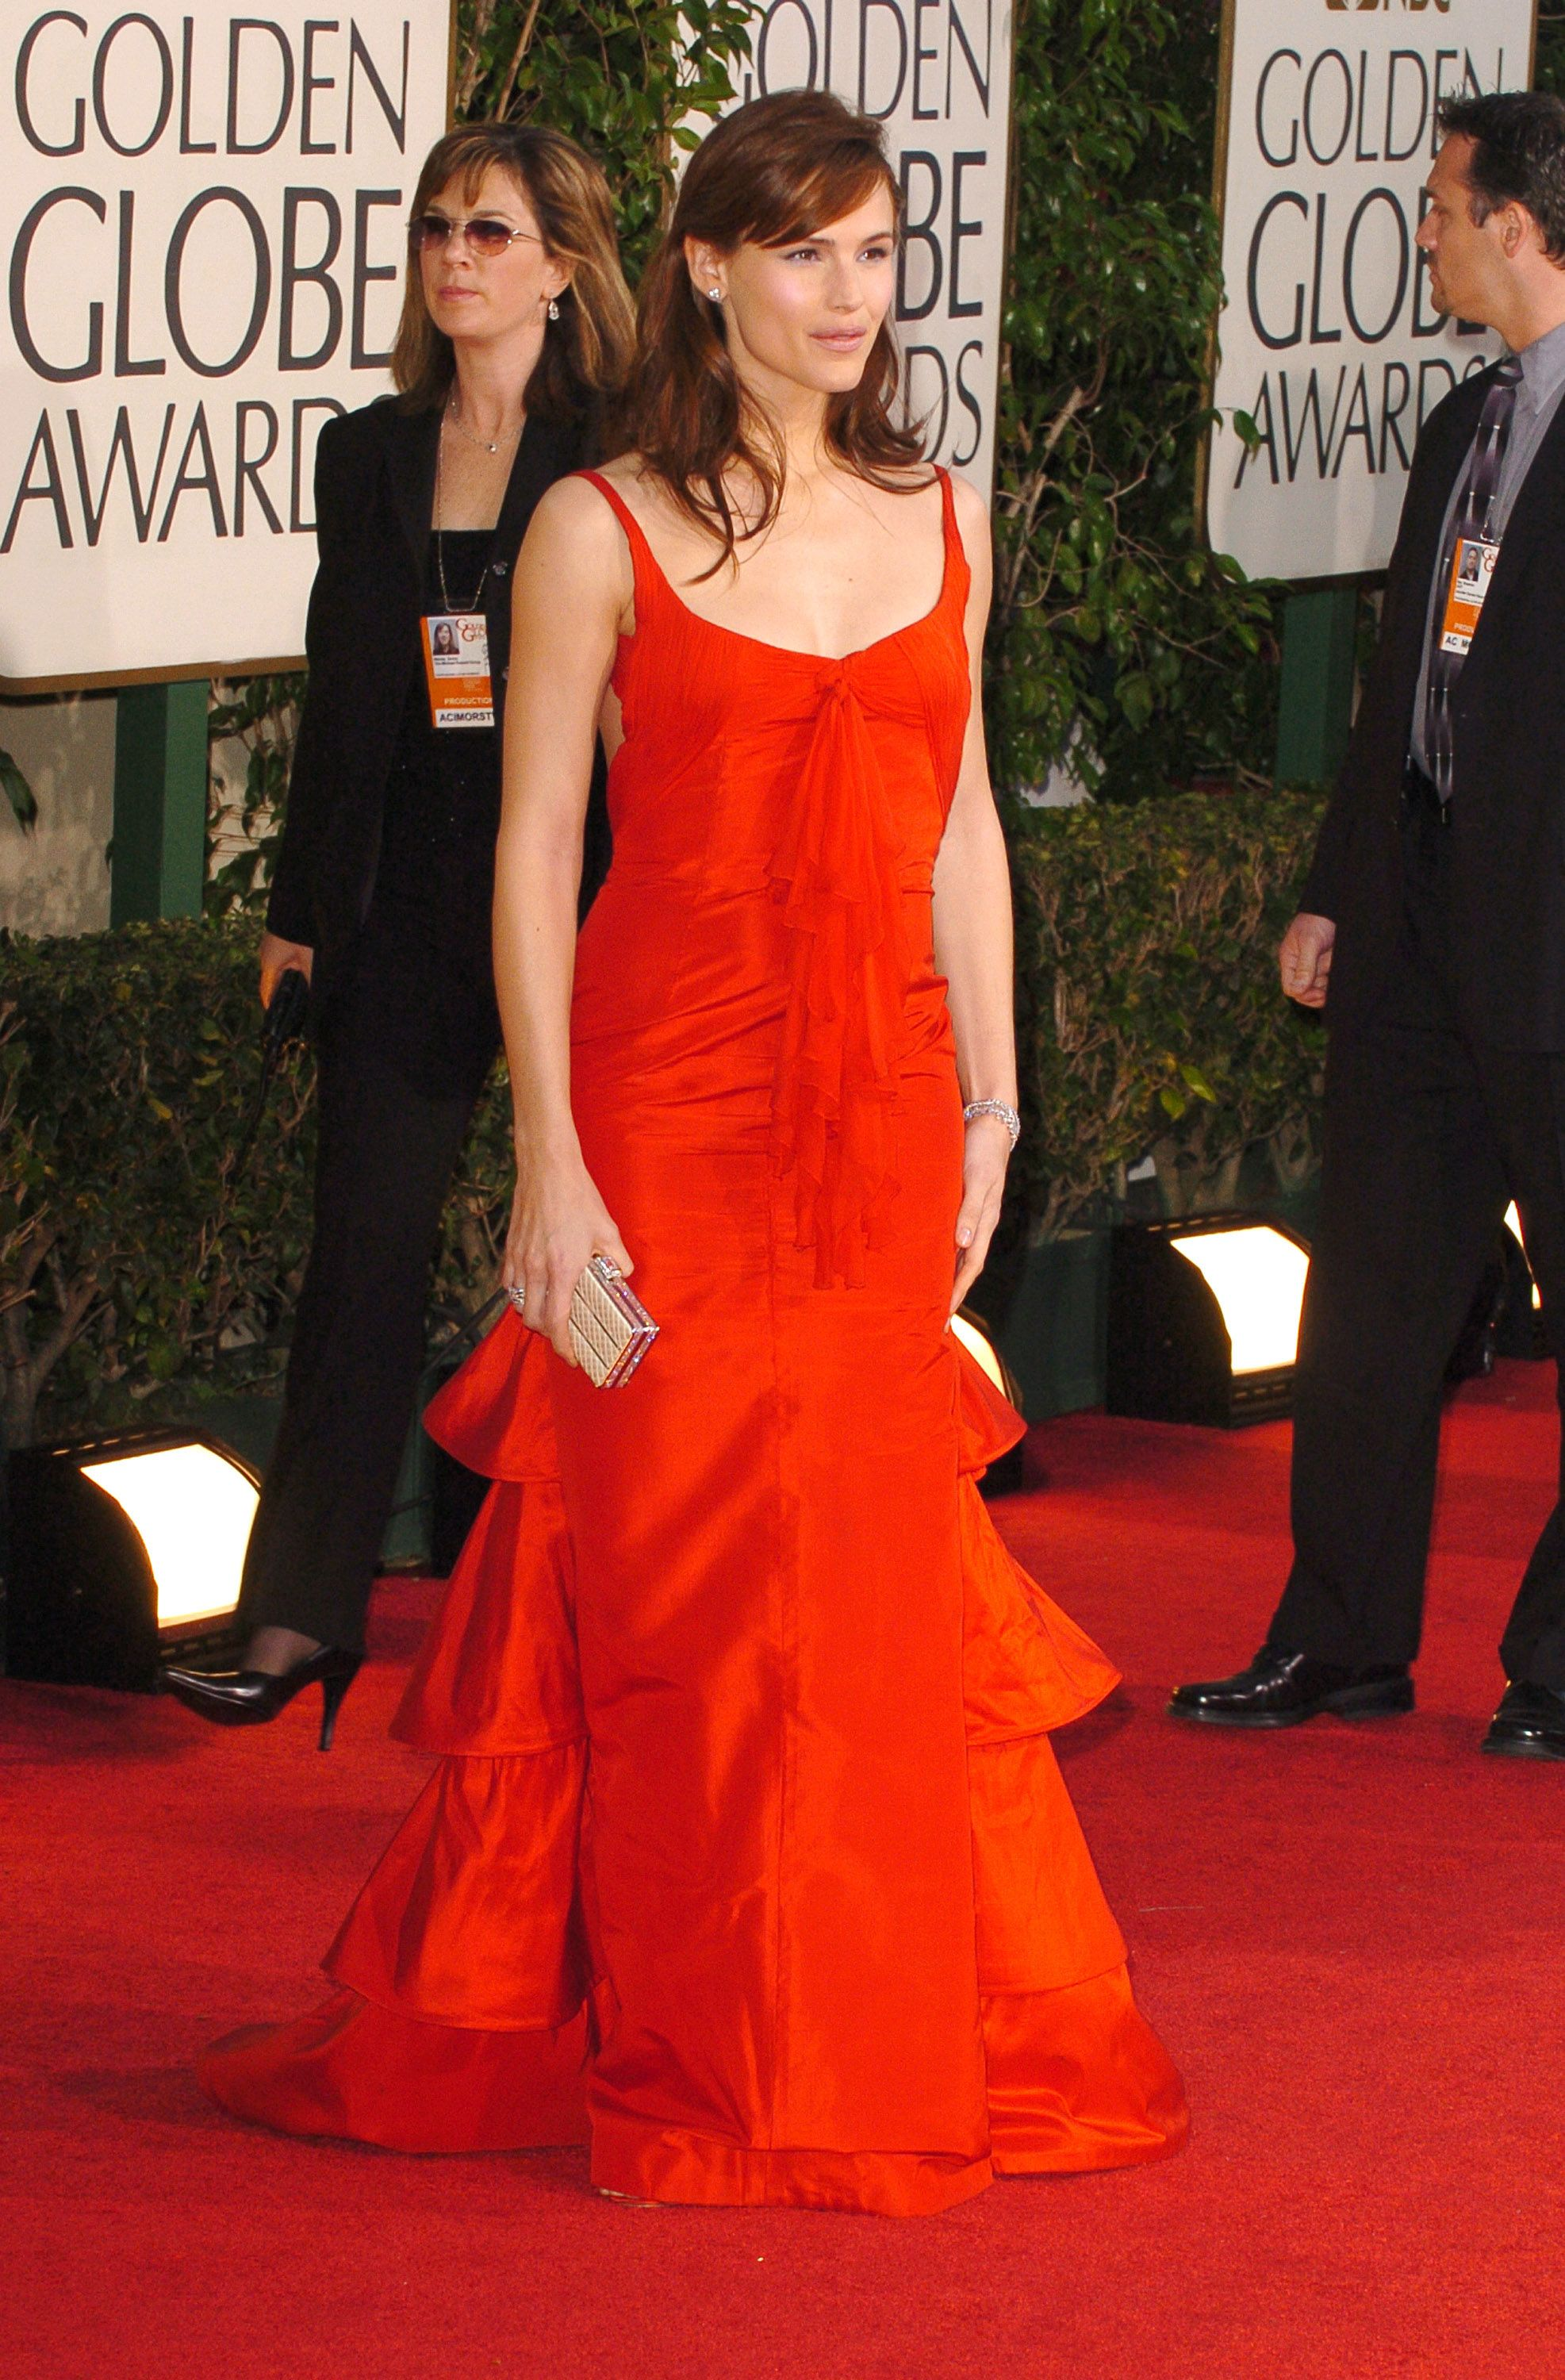 January 16, 2005 At the 62nd Annual Golden Globe Awards in Los Angeles.